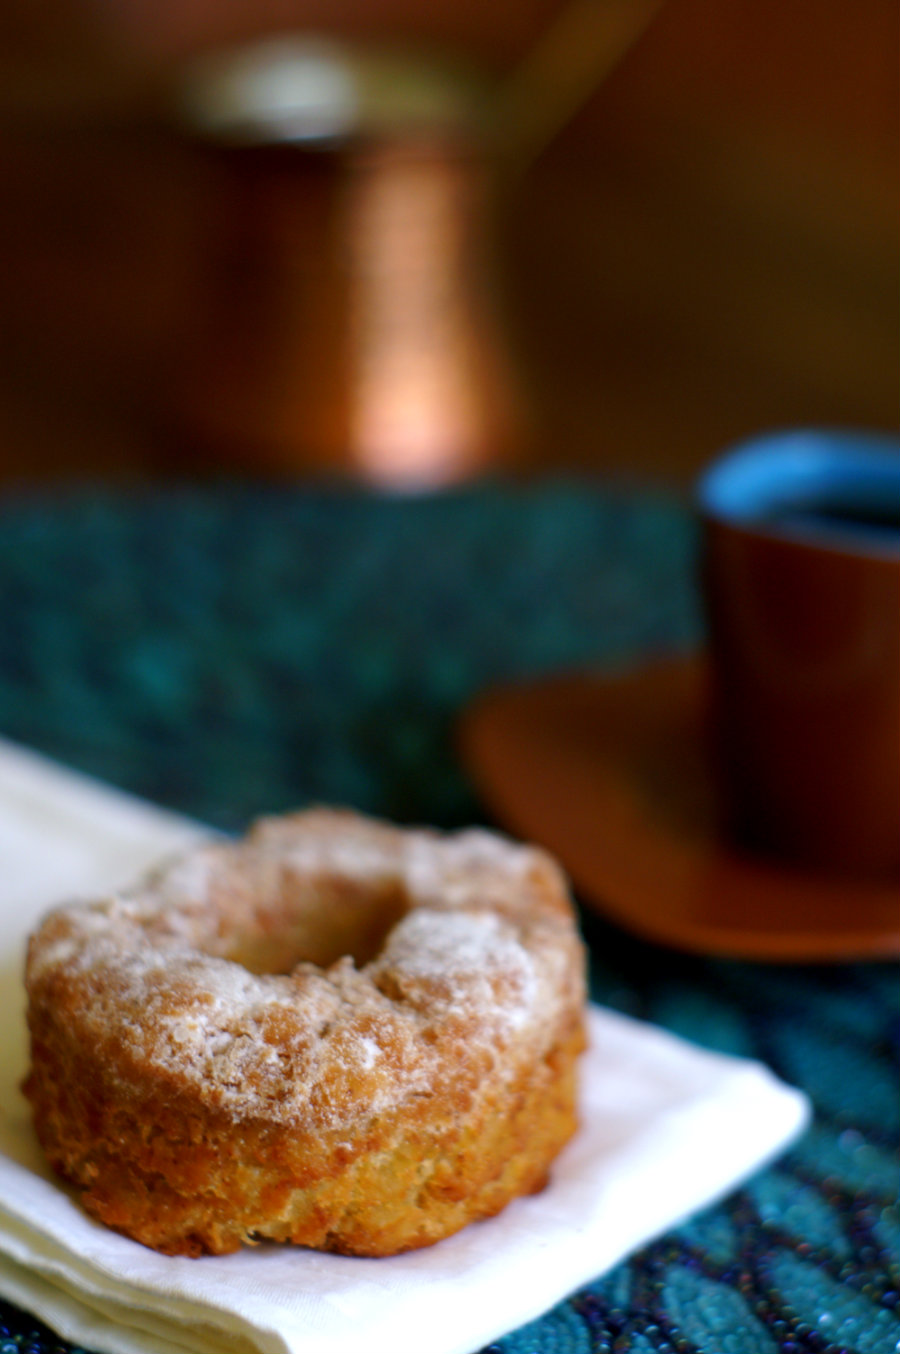 cronut n coffee